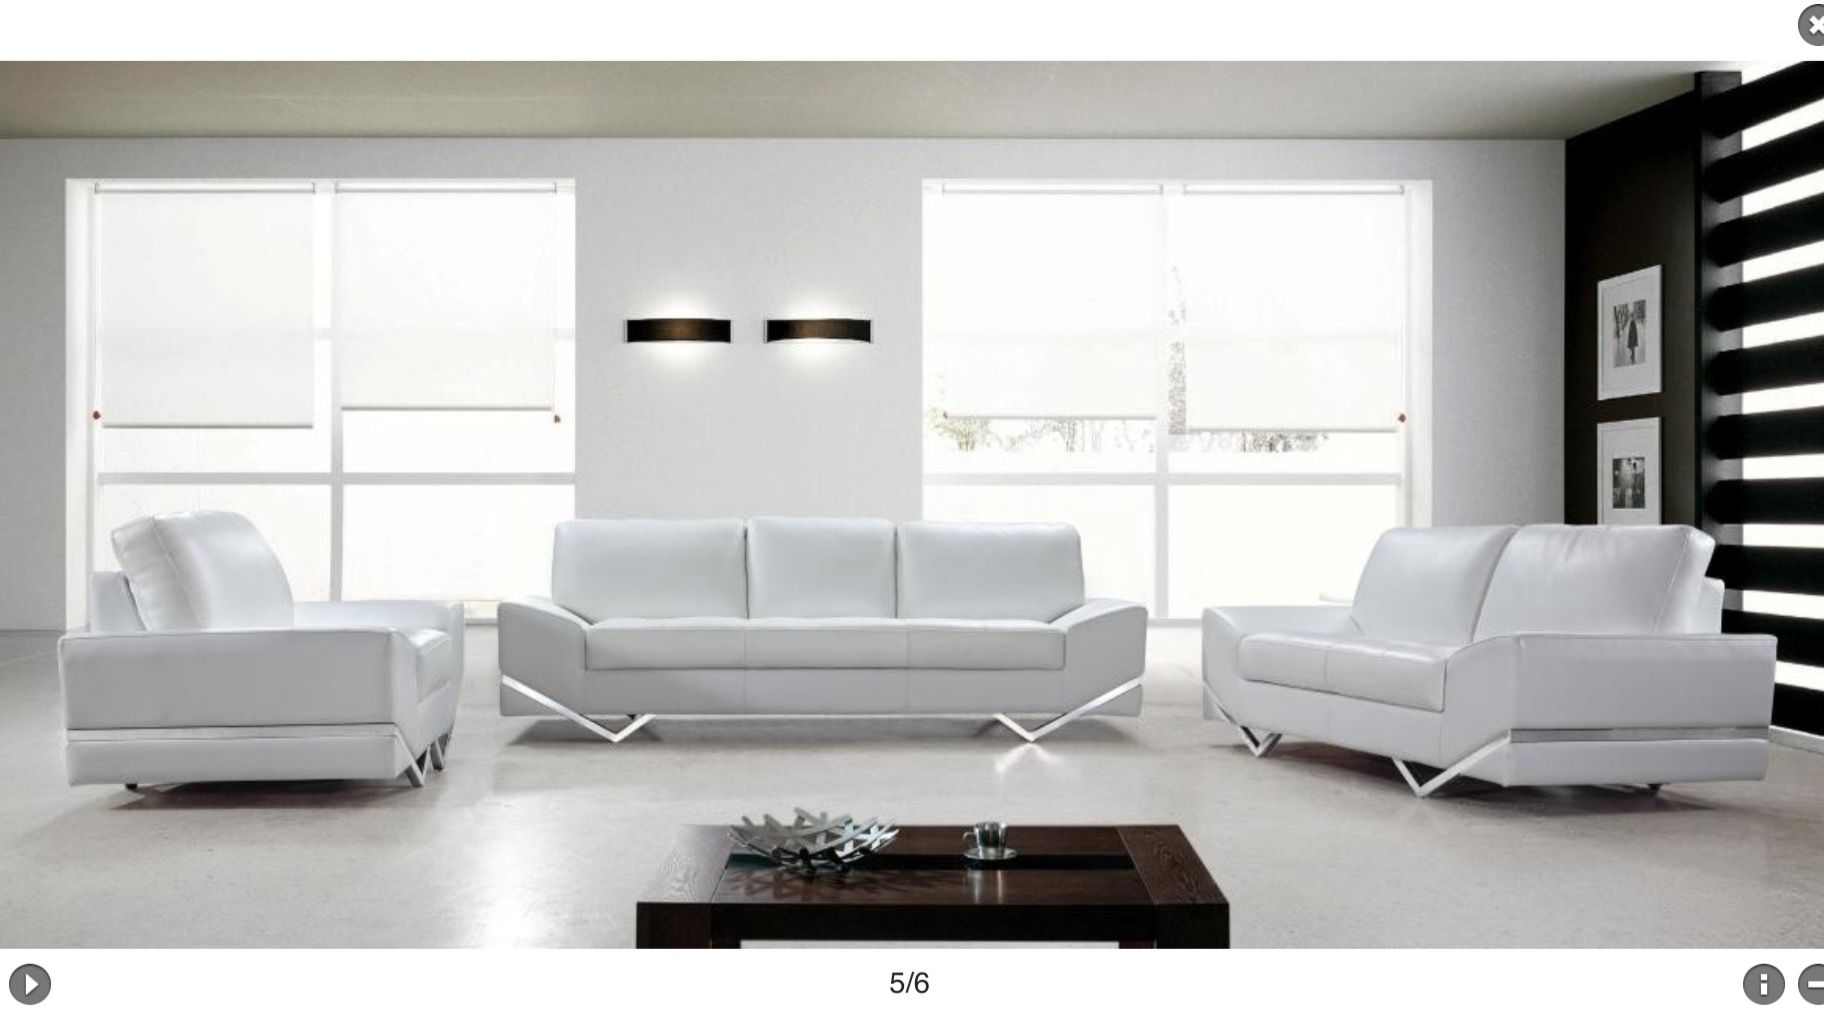 My living room set! Either two love seats and a couch or two couches ...